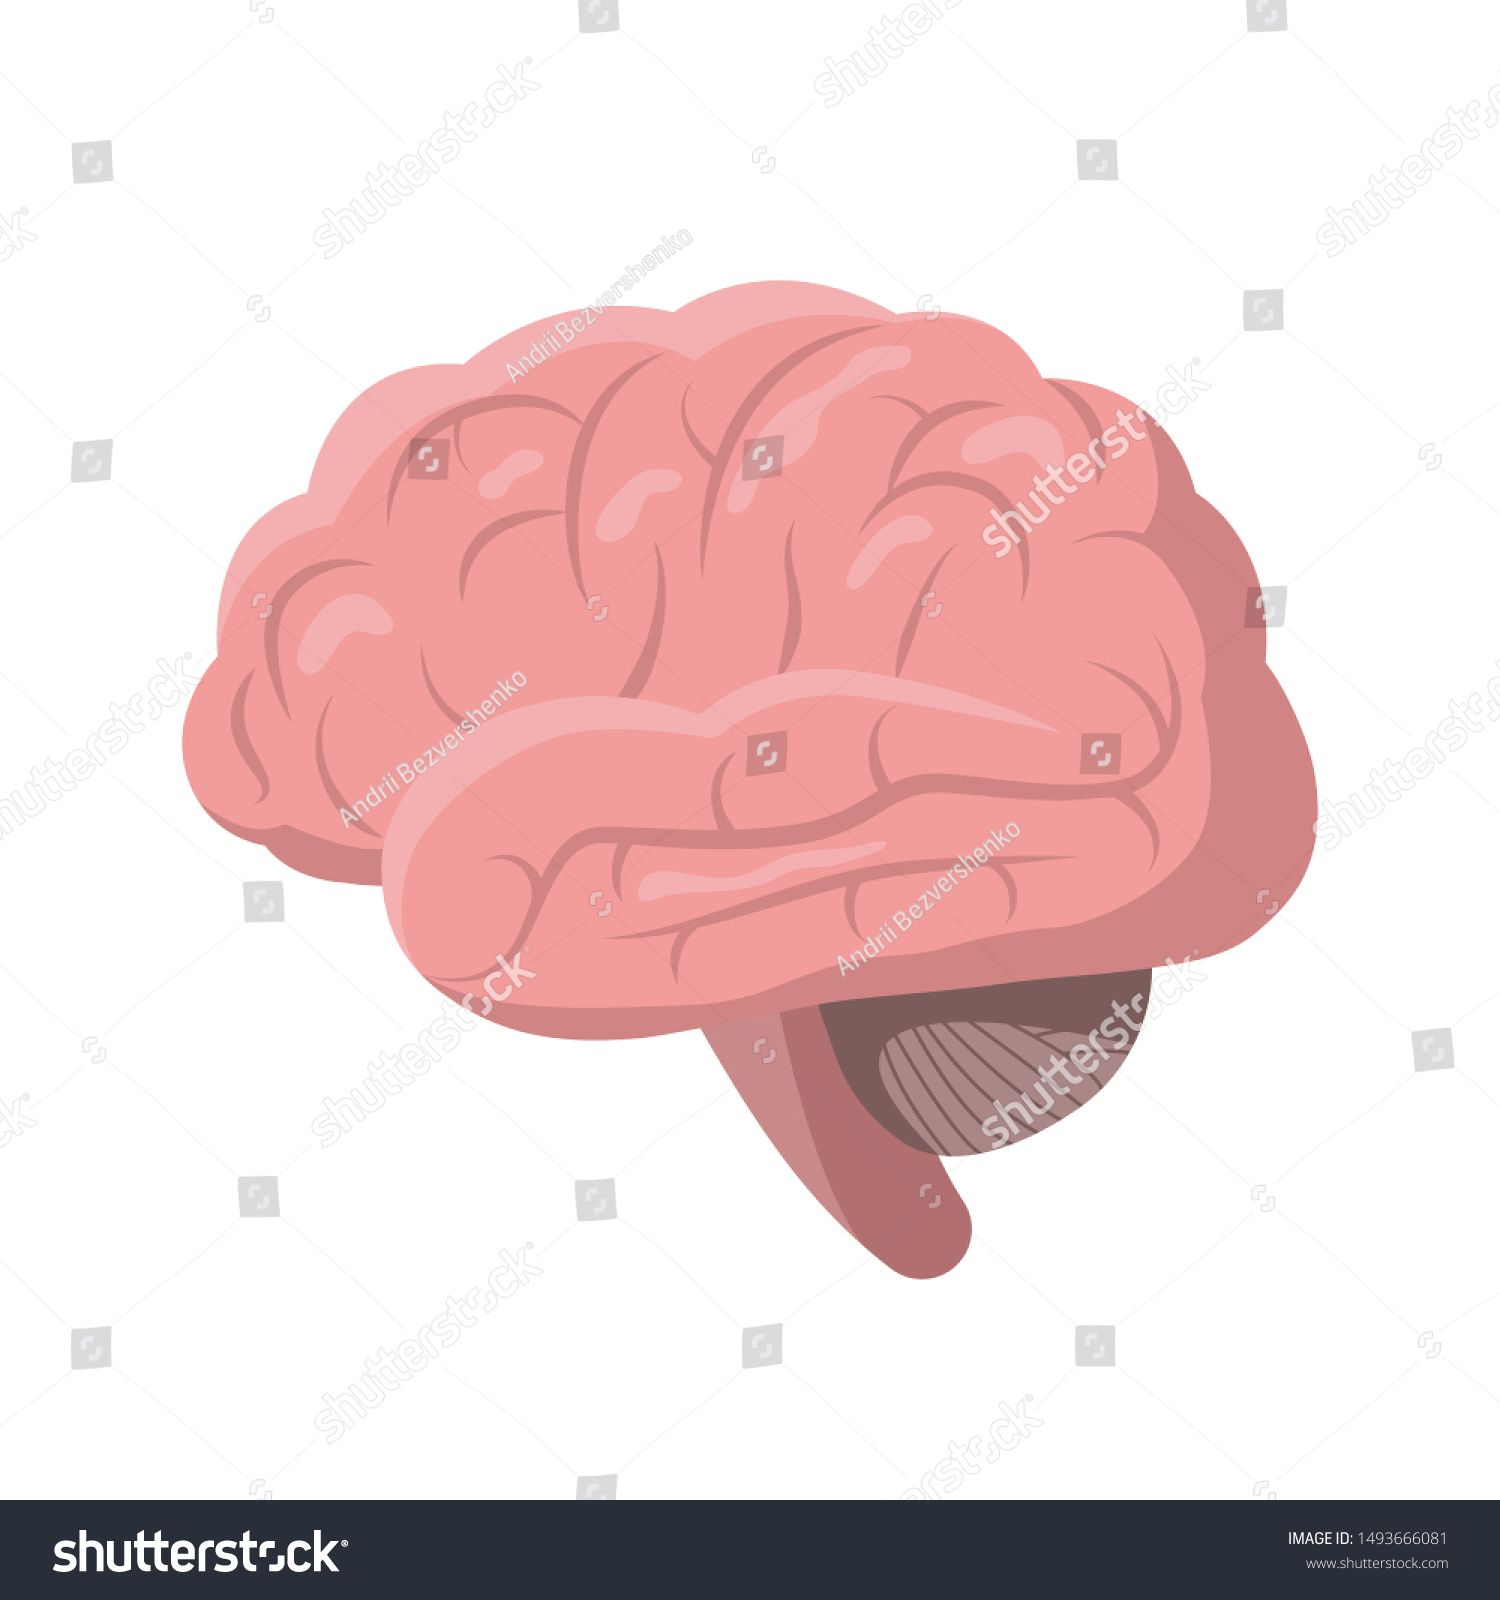 1458+ Teachers Love Brains Svg Zip File